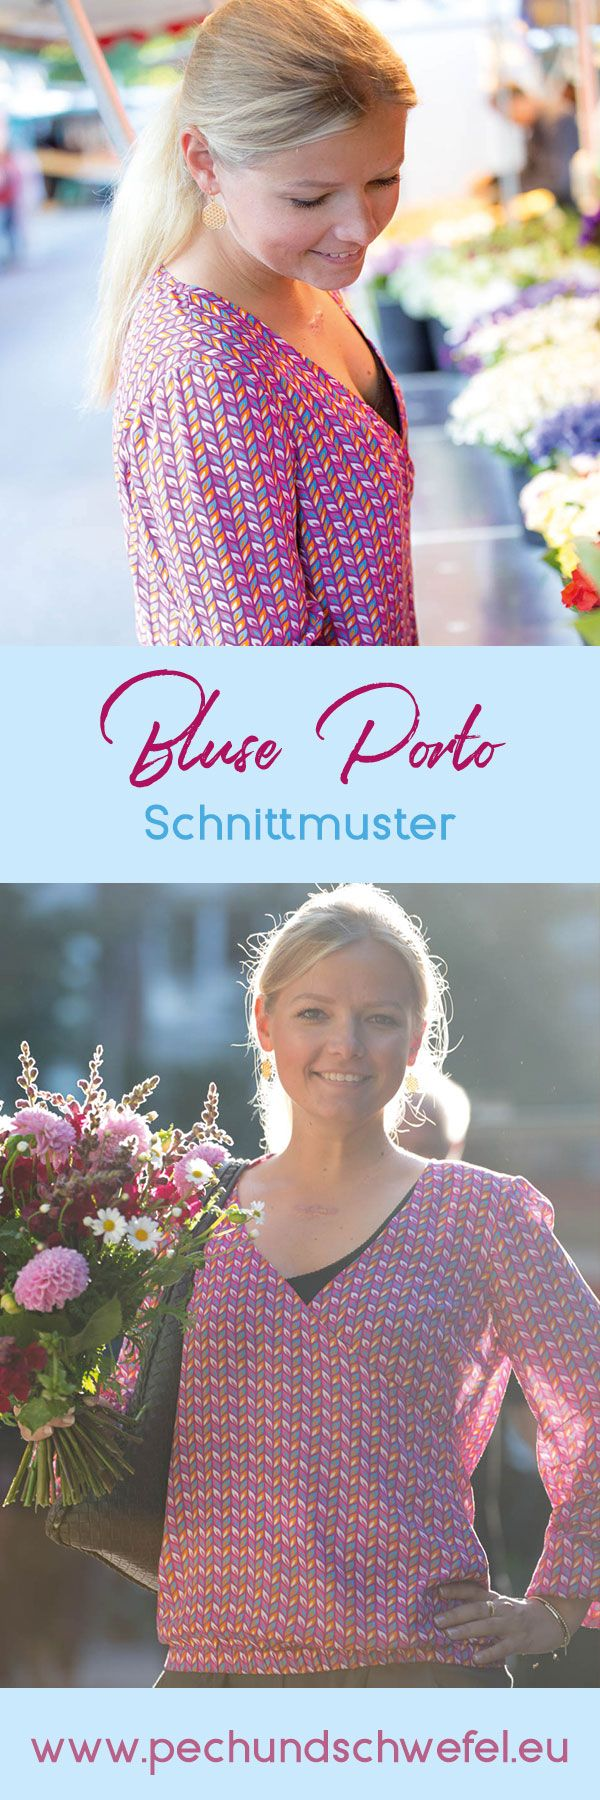 89 best Schnittmuster | Blusen nähen images on Pinterest